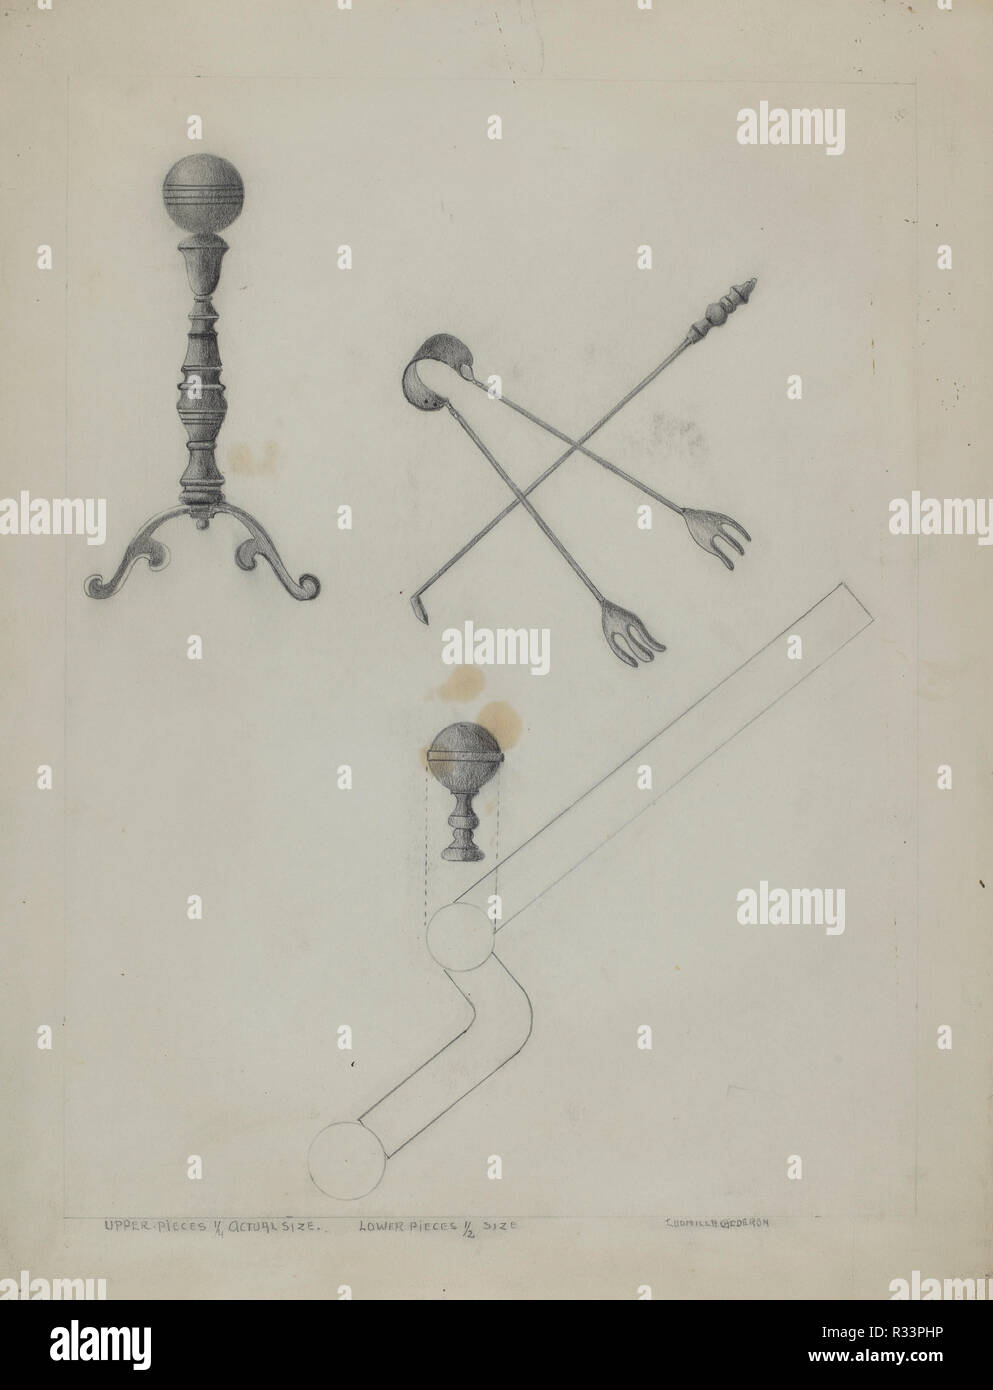 Andiron and Fireplace Set. Dated: 1935/1942. Dimensions: overall: 35.5 x 27.9 cm (14 x 11 in.). Medium: graphite on paper. Museum: National Gallery of Art, Washington DC. Author: Ludmilla Calderon. - Stock Image